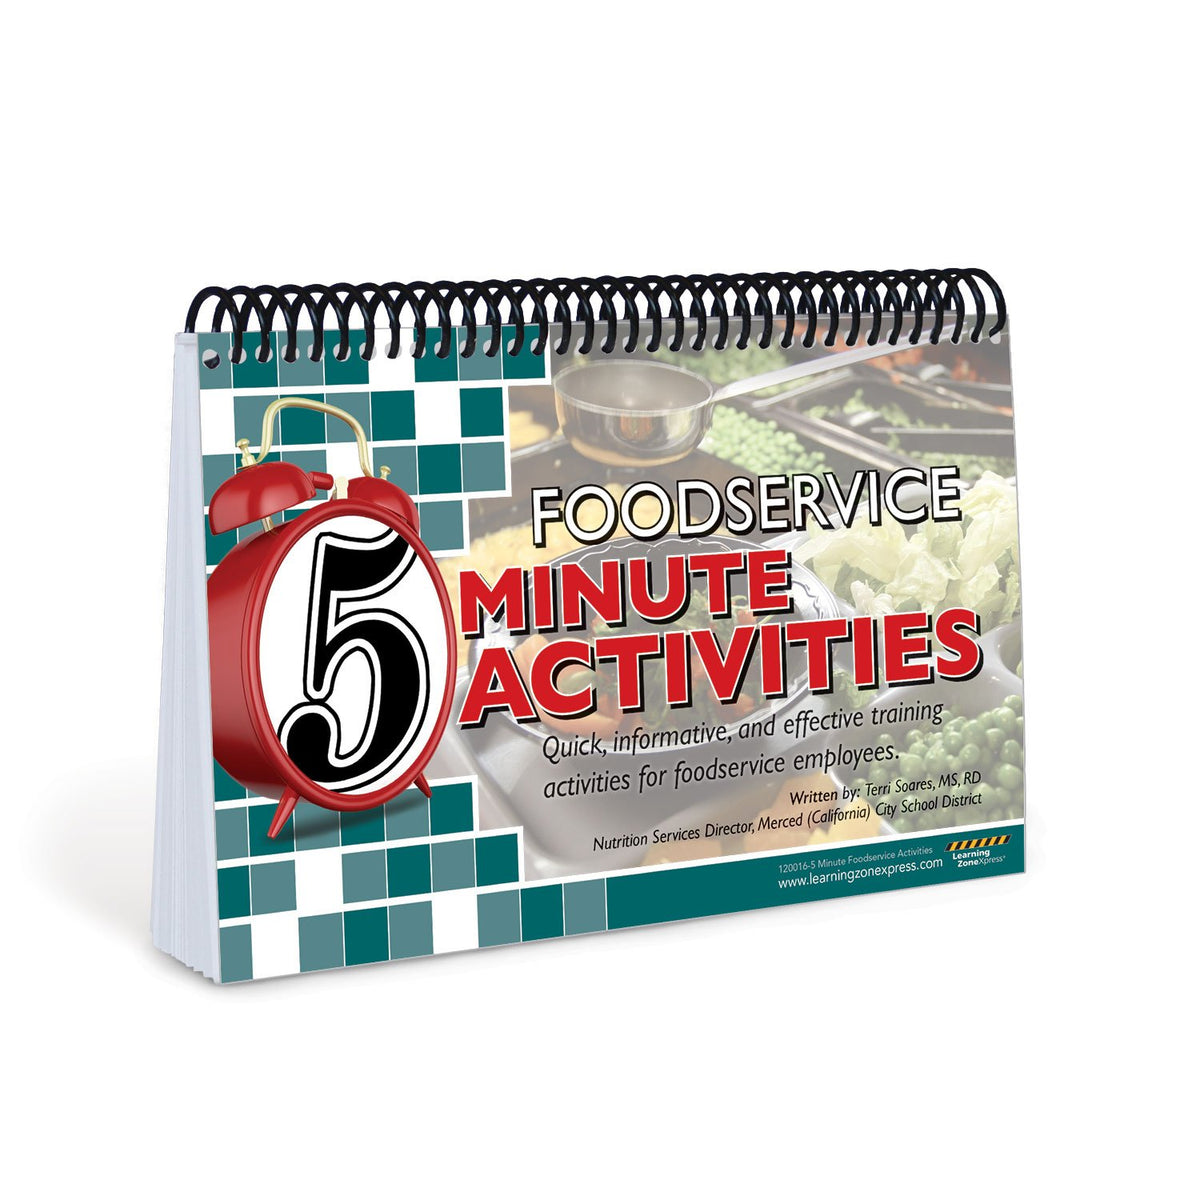 5 Minute Foodservice Activities